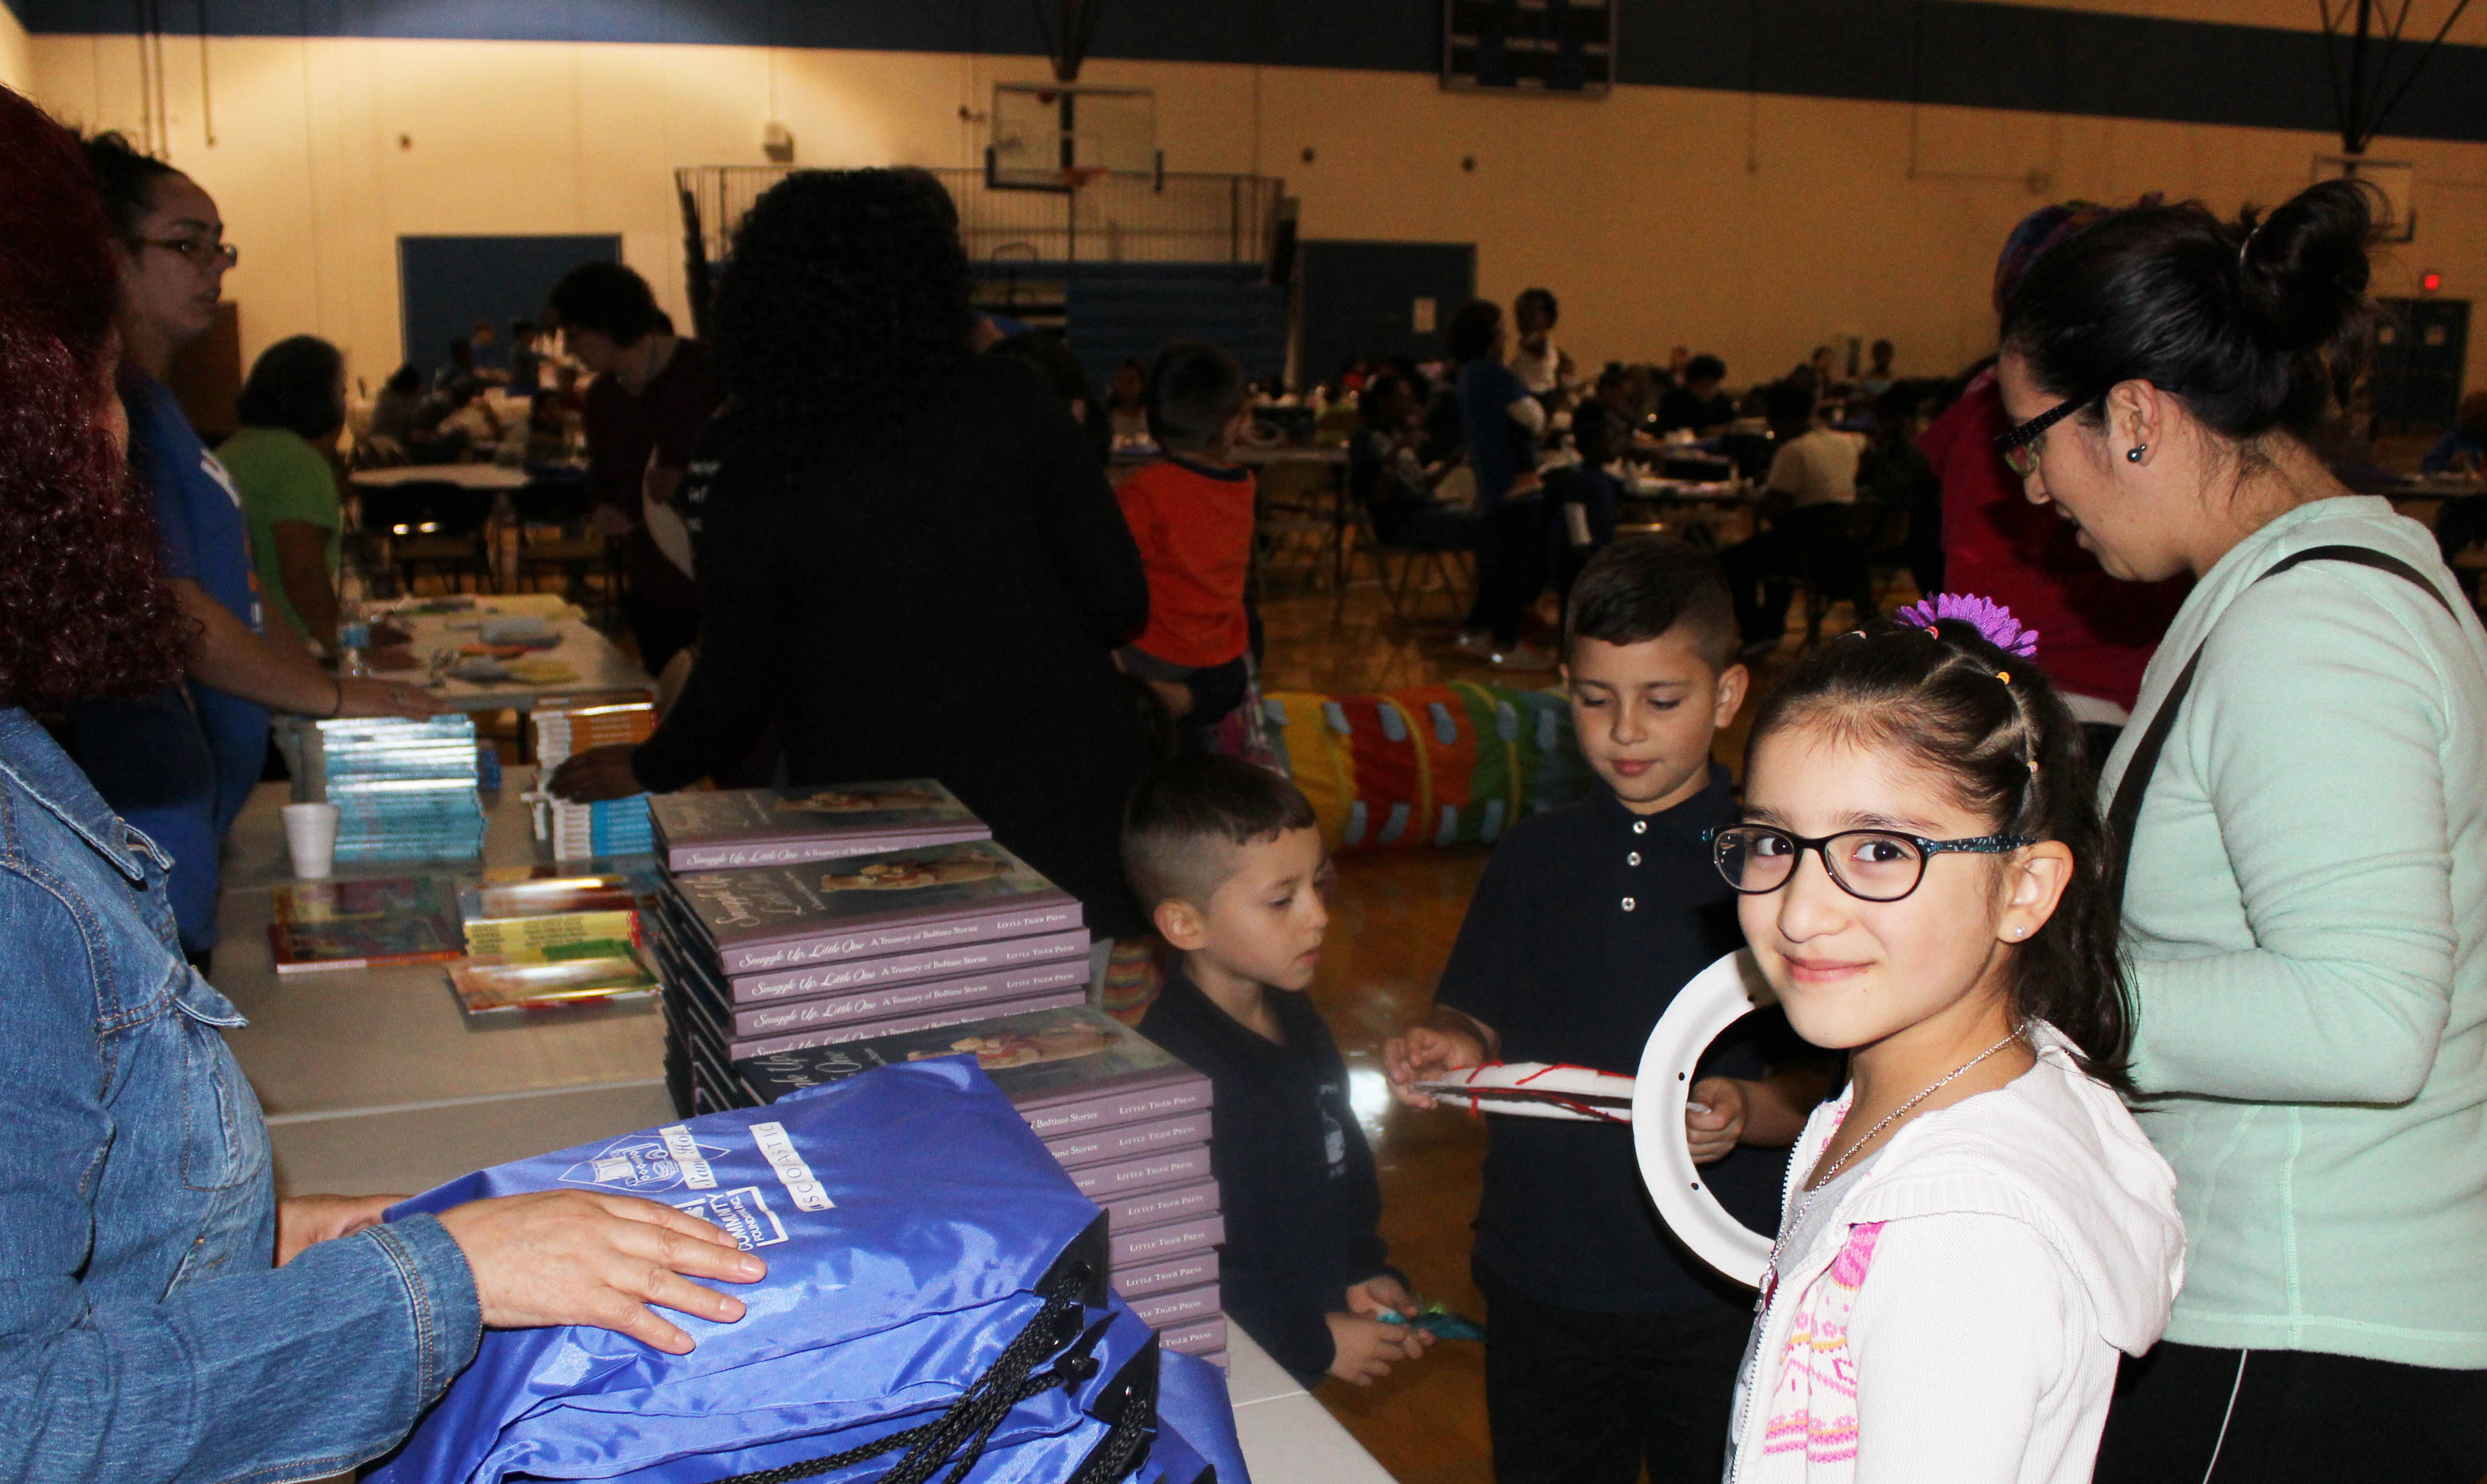 Grateful families receiving backpacks stuffed with great books!